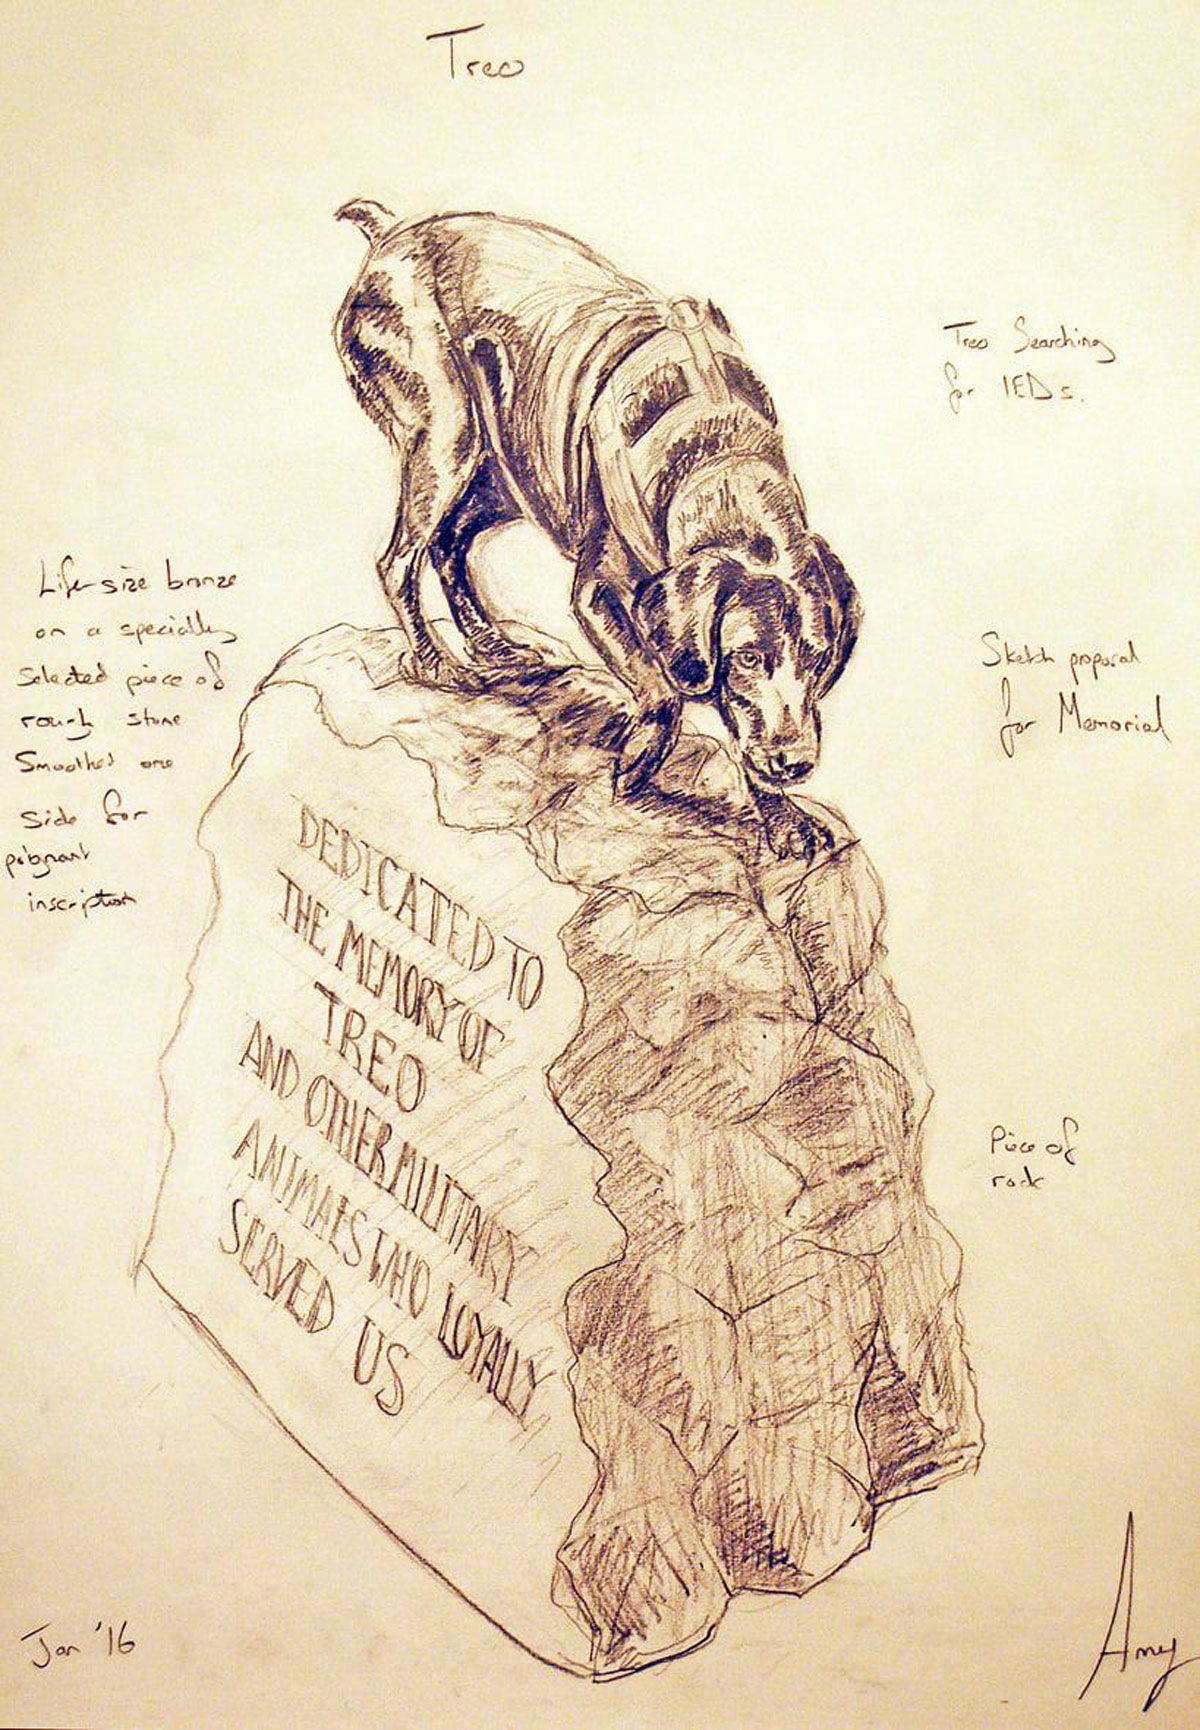 Amy's sketch of the sculpture